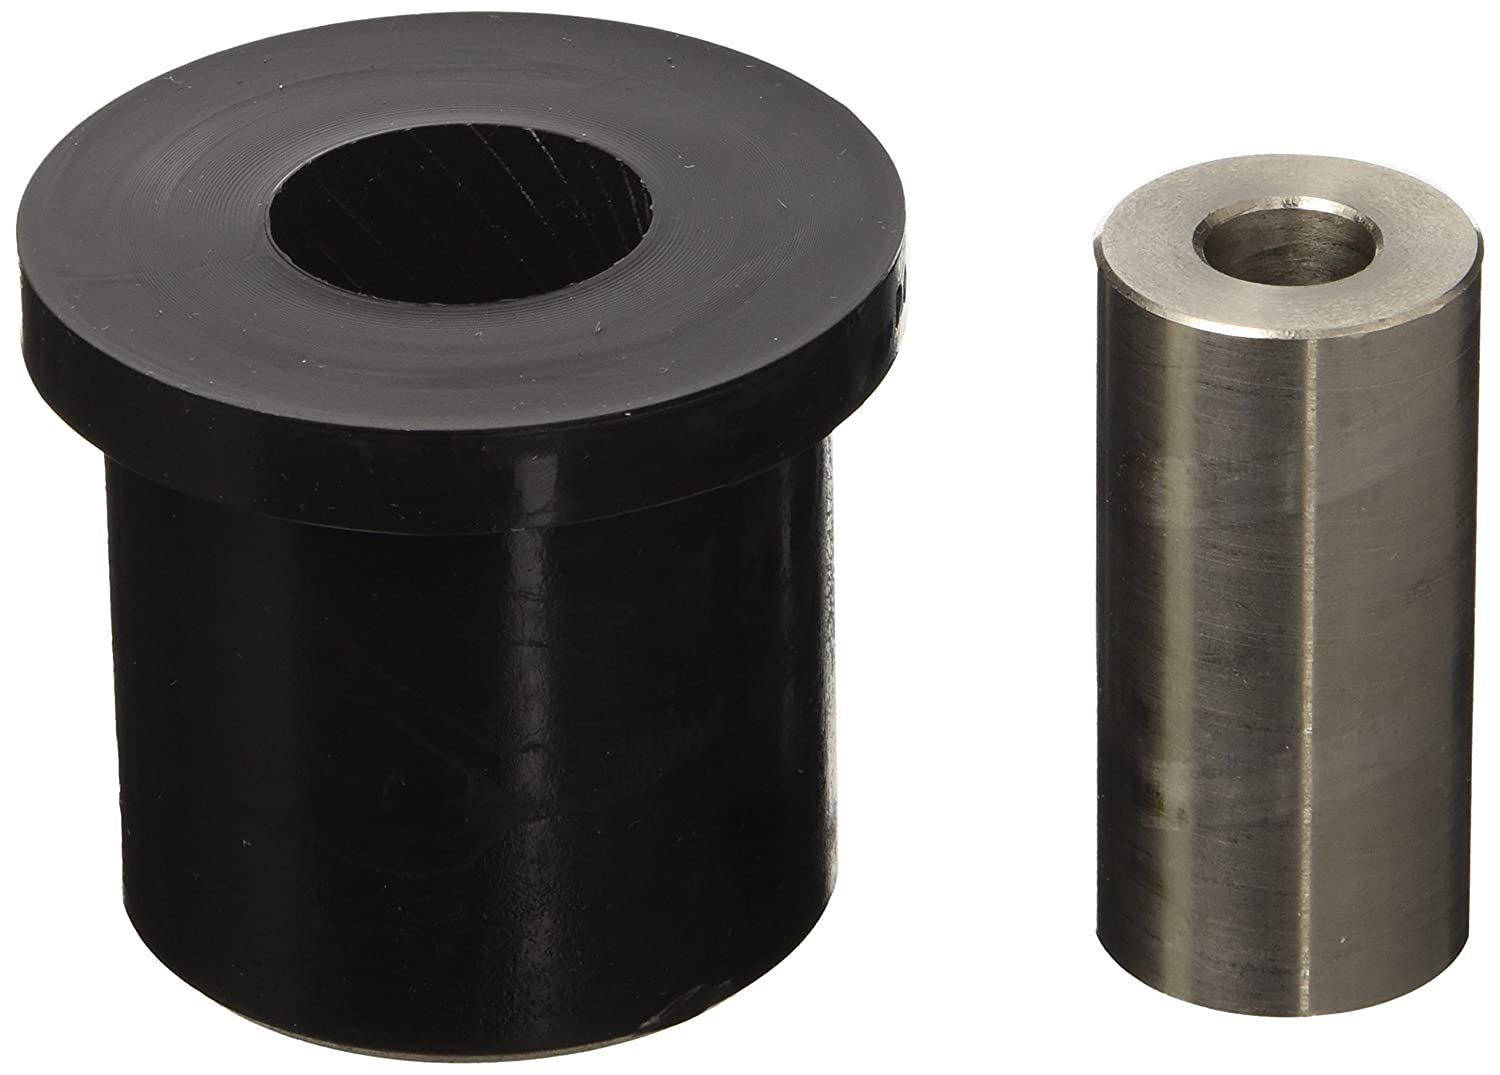 Powerflex performance polyurethane bushes - Front Arm Front Bush, Camber Adjustable - Art. Nr. PFF85-1302BLK - Kit of 2 pieces